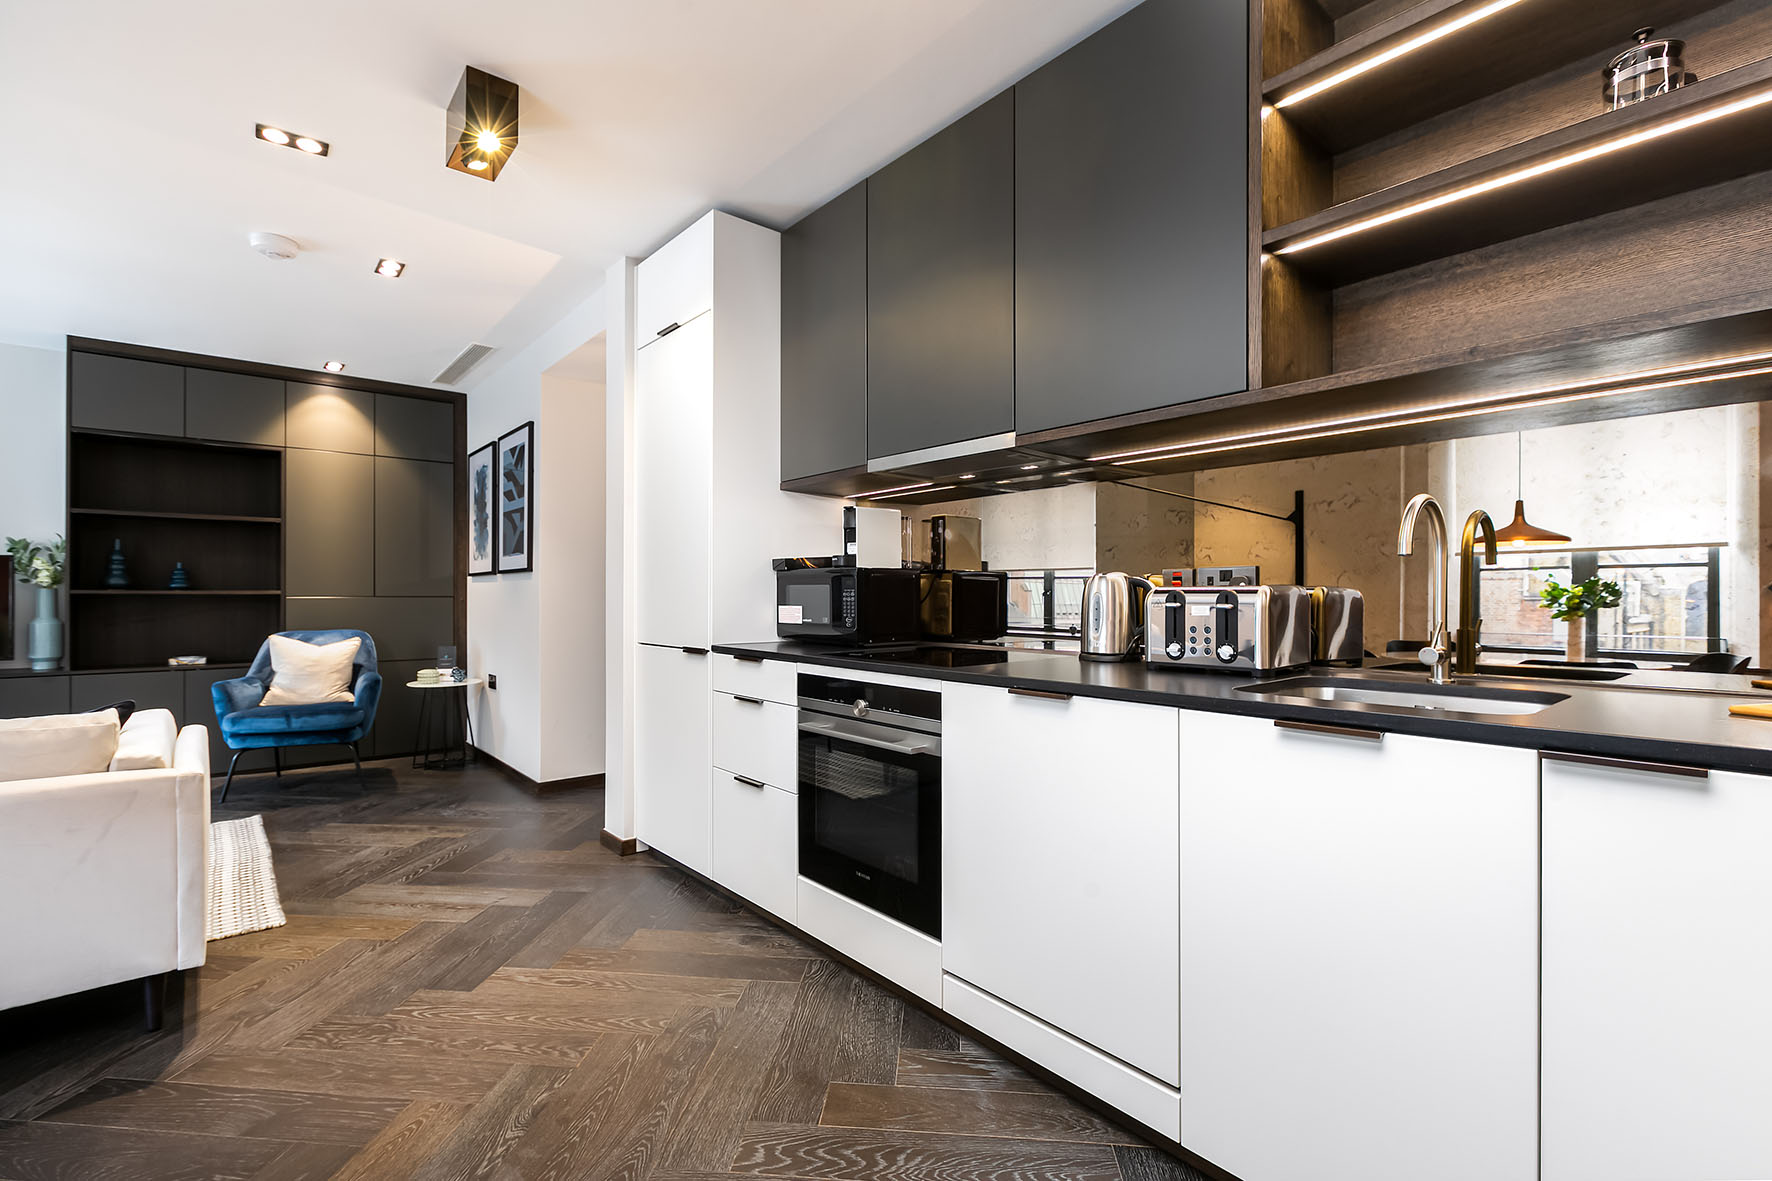 Lovelydays luxury service apartment rental - London - Soho - Noel Street VII - Lovelysuite - 1 bedrooms - 1 bathrooms - Luxury kitchen - 82a43d854e77 - Lovelydays